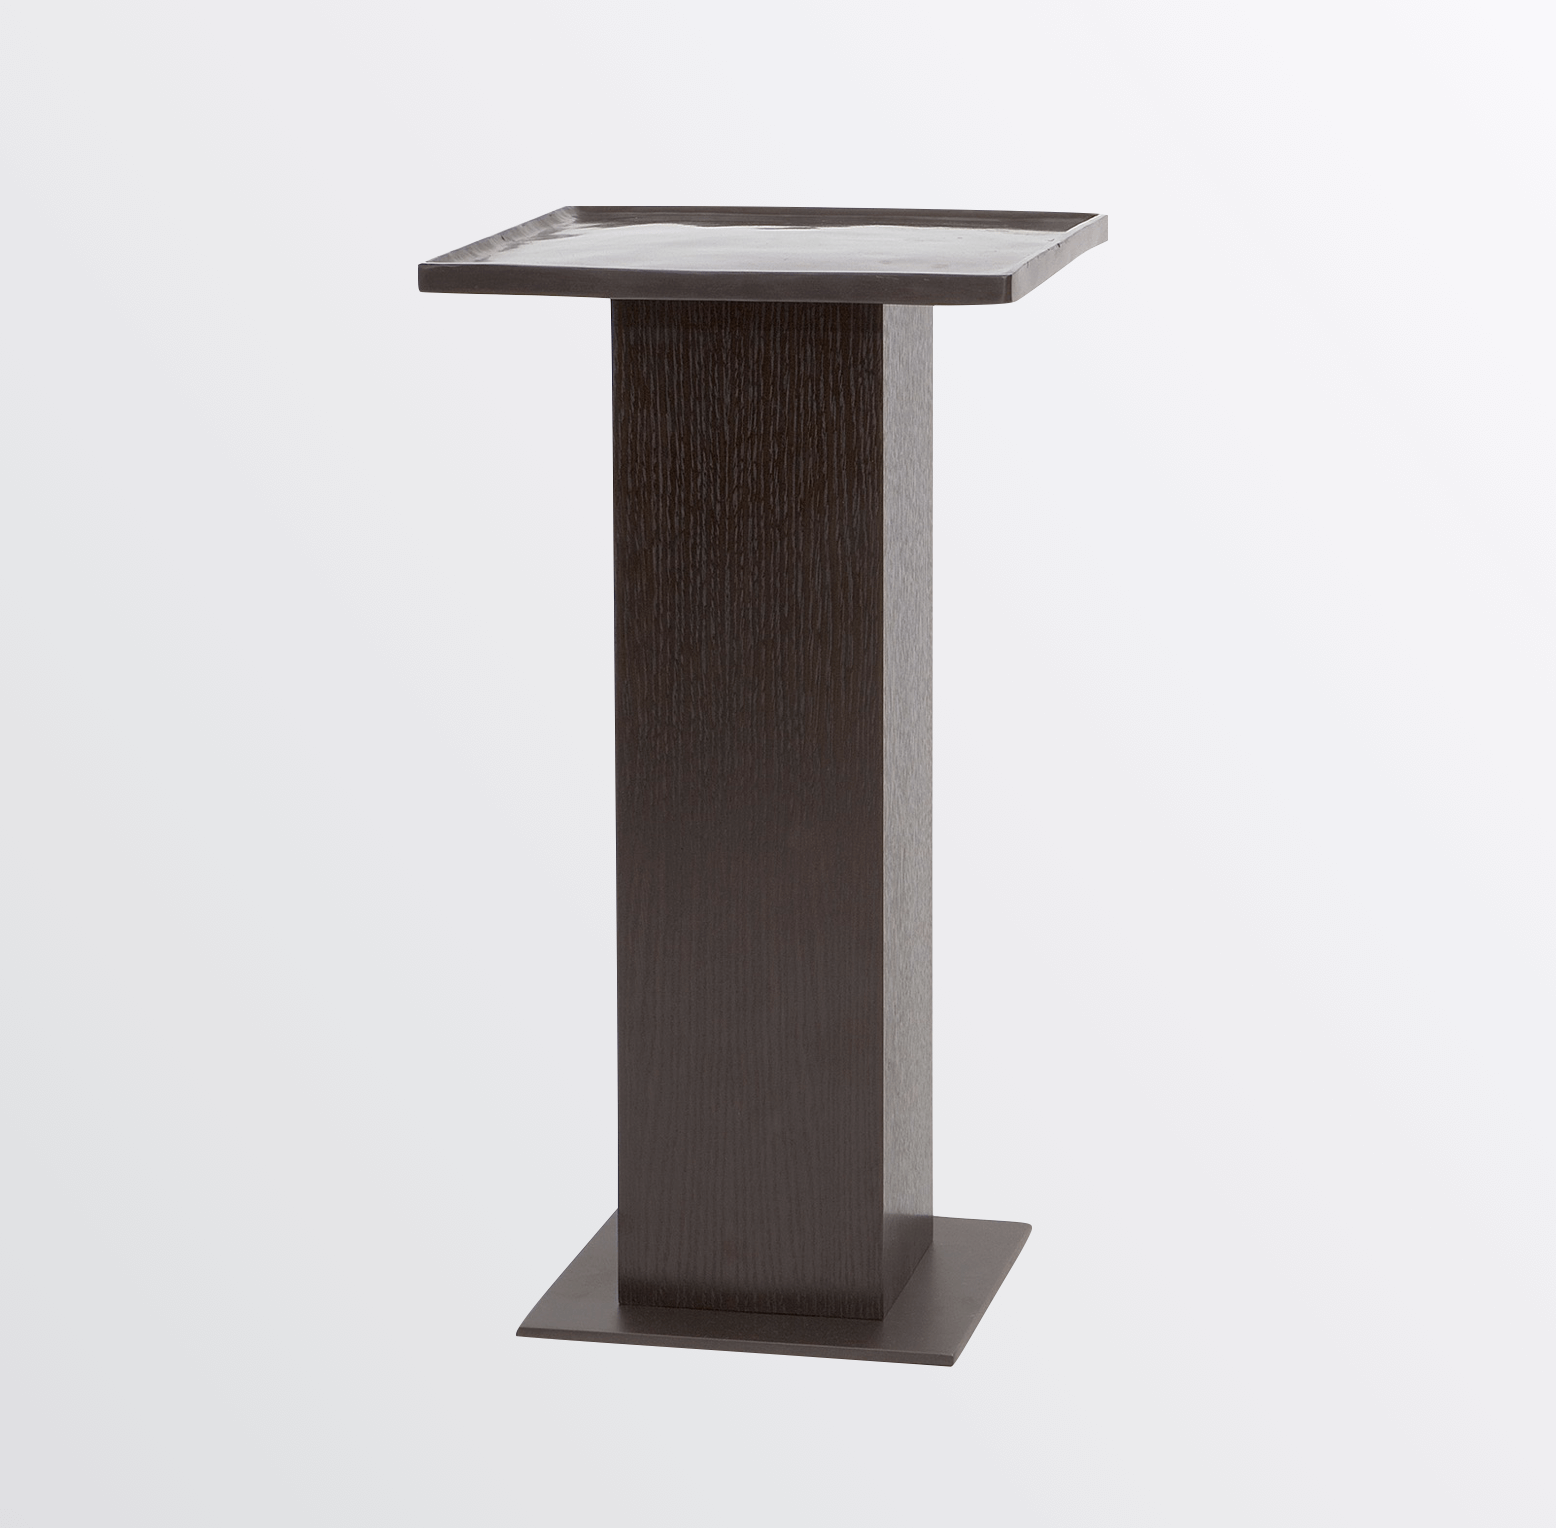 Aguirre Design - Cast Bronze, Oak and Brass Side Table